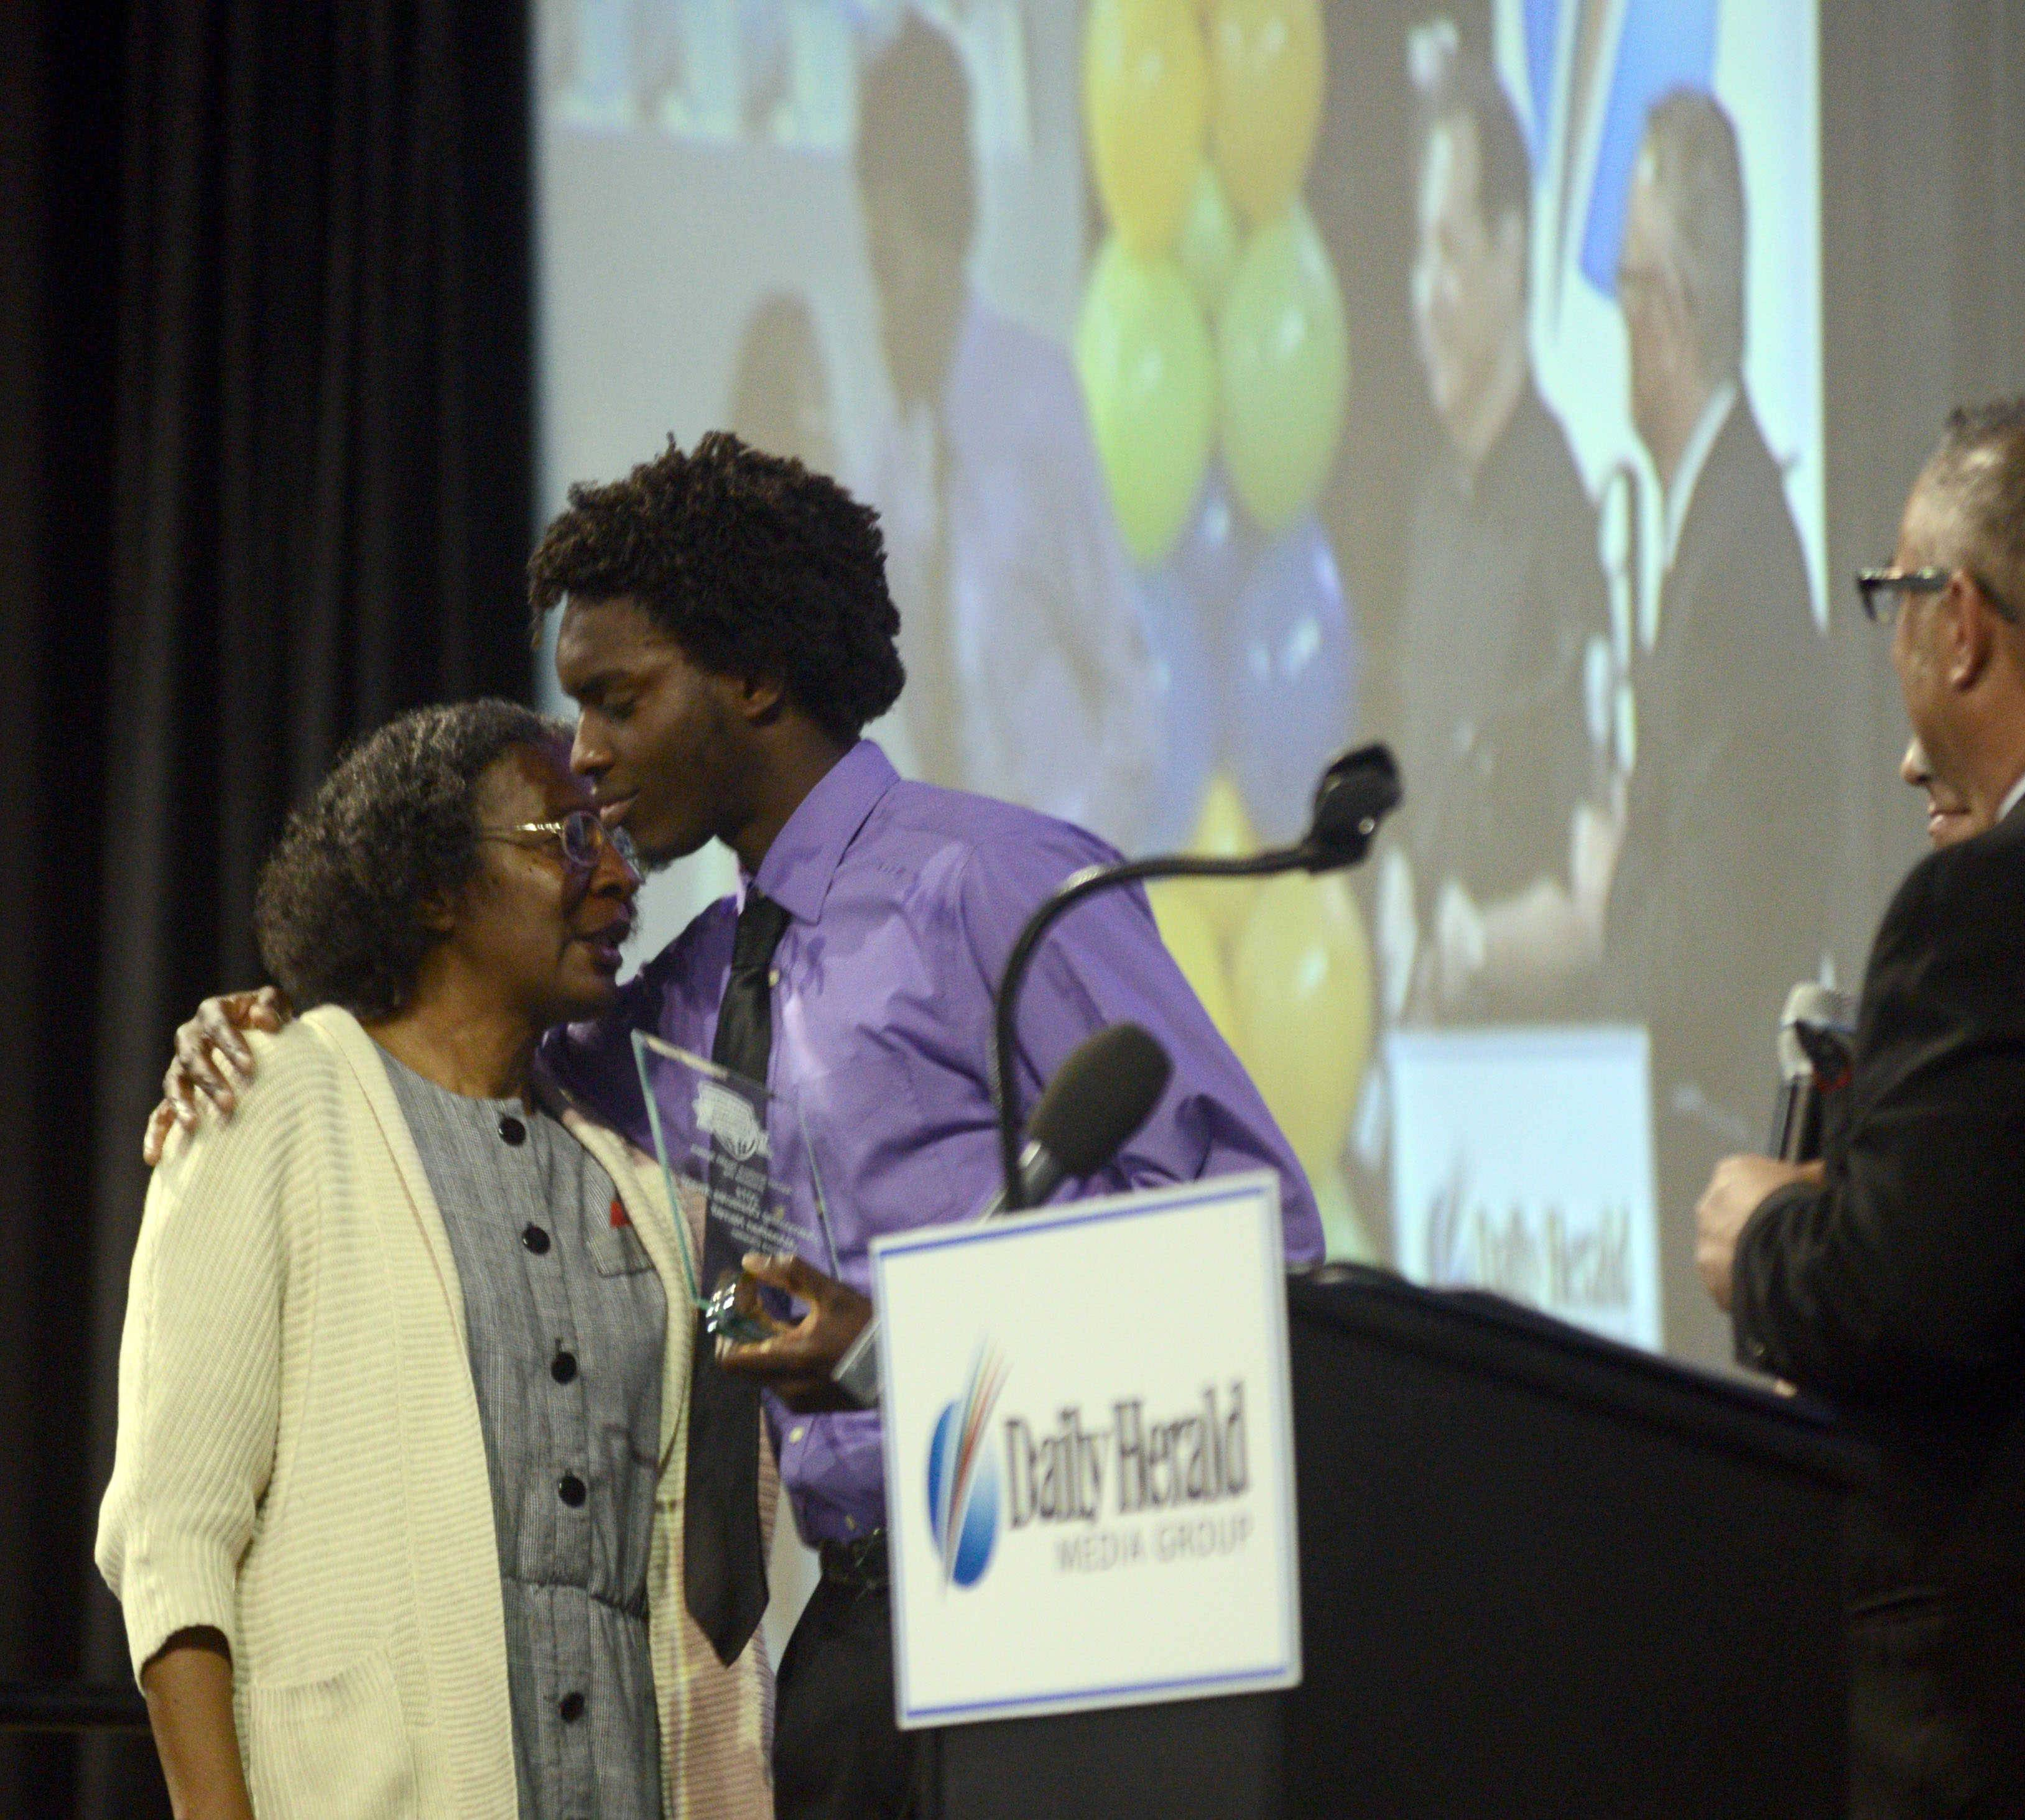 Aurora Christian basketball player Johnathan Harrell hugs his mother after receiving an Overcoming Obstacle Award during the Daily Herald Prep Sports Excellence event at the Sears Centre in Hoffman Estates on Sunday afternoon. Johnathan's mother encouraged him to play in a game last winter just a day after his brother was killed in a car accident.